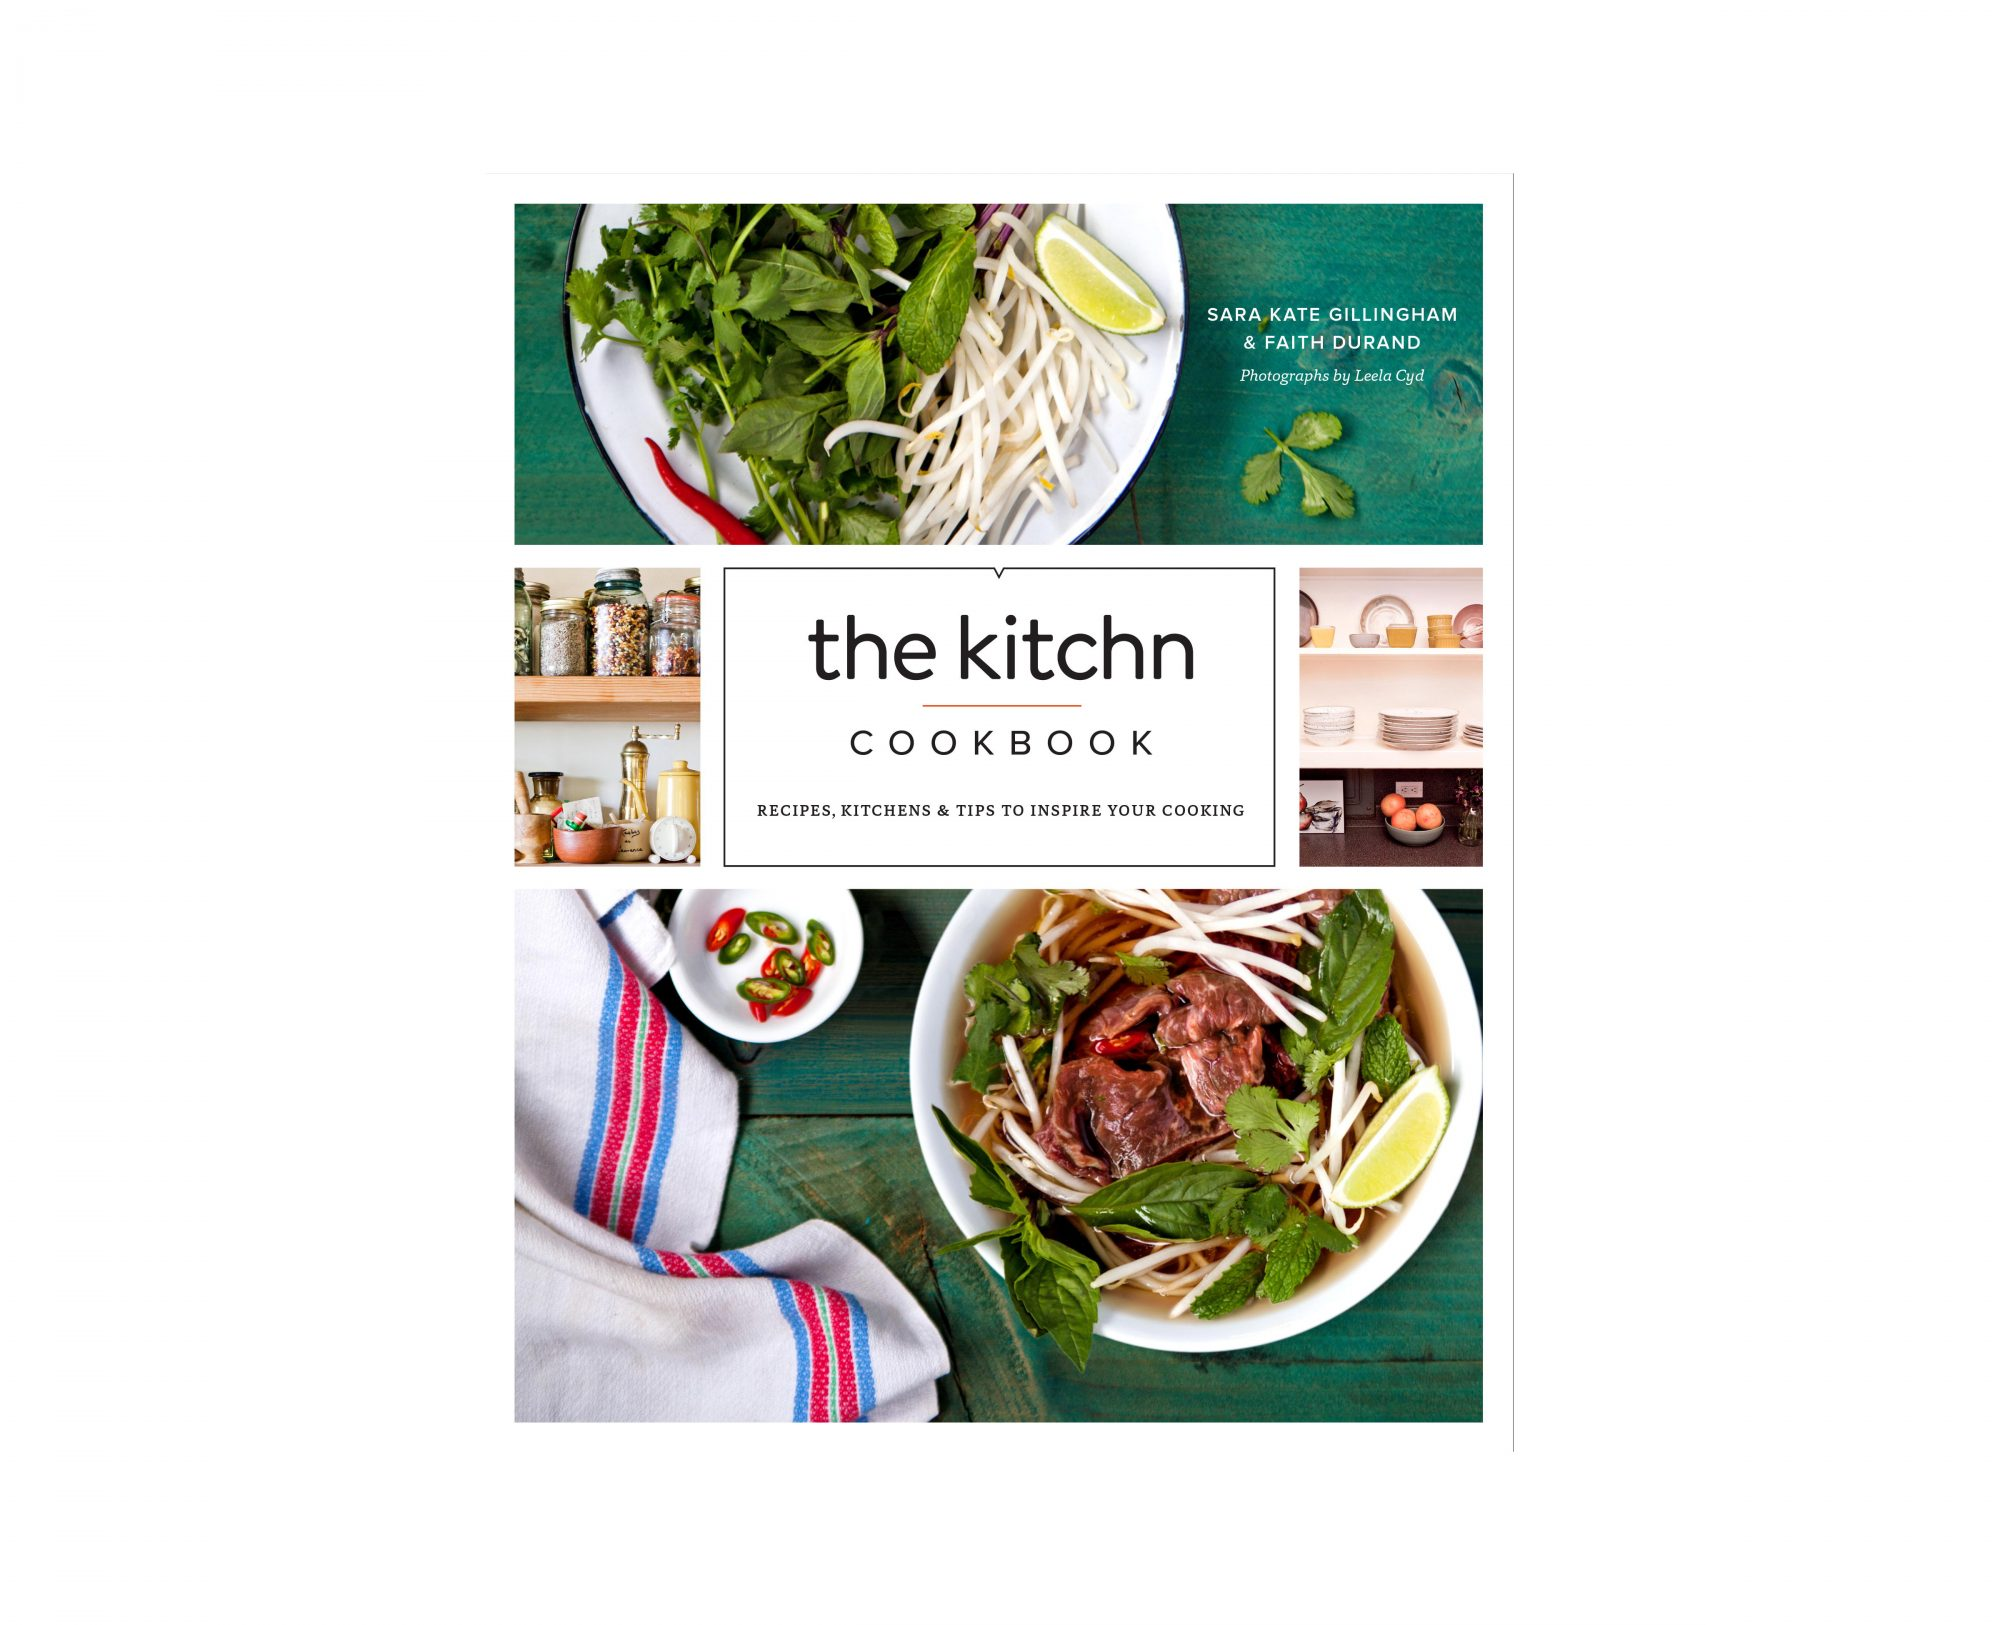 The Kitchn Cookbook: Recipes, Kitchens & Tips to Inspire Your Cooking by Sara Kate Gillingham & Faith Durand